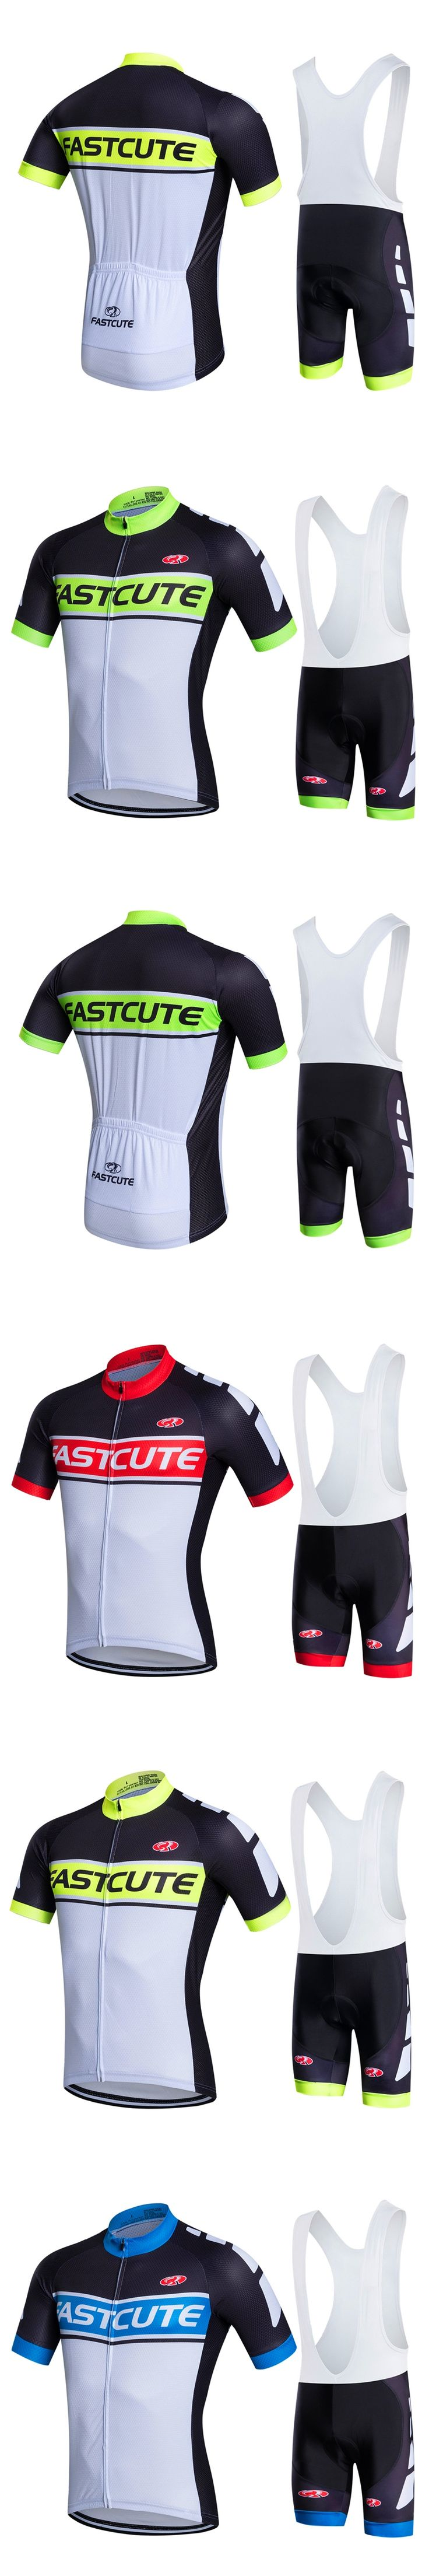 FASTCUTE Bicycle Cycling Jersey Clothing 2016 Bike Jerseys Abbigliamento Ciclismo Estivo Ropa Maillot Ciclismo Hombre Verano Mtb